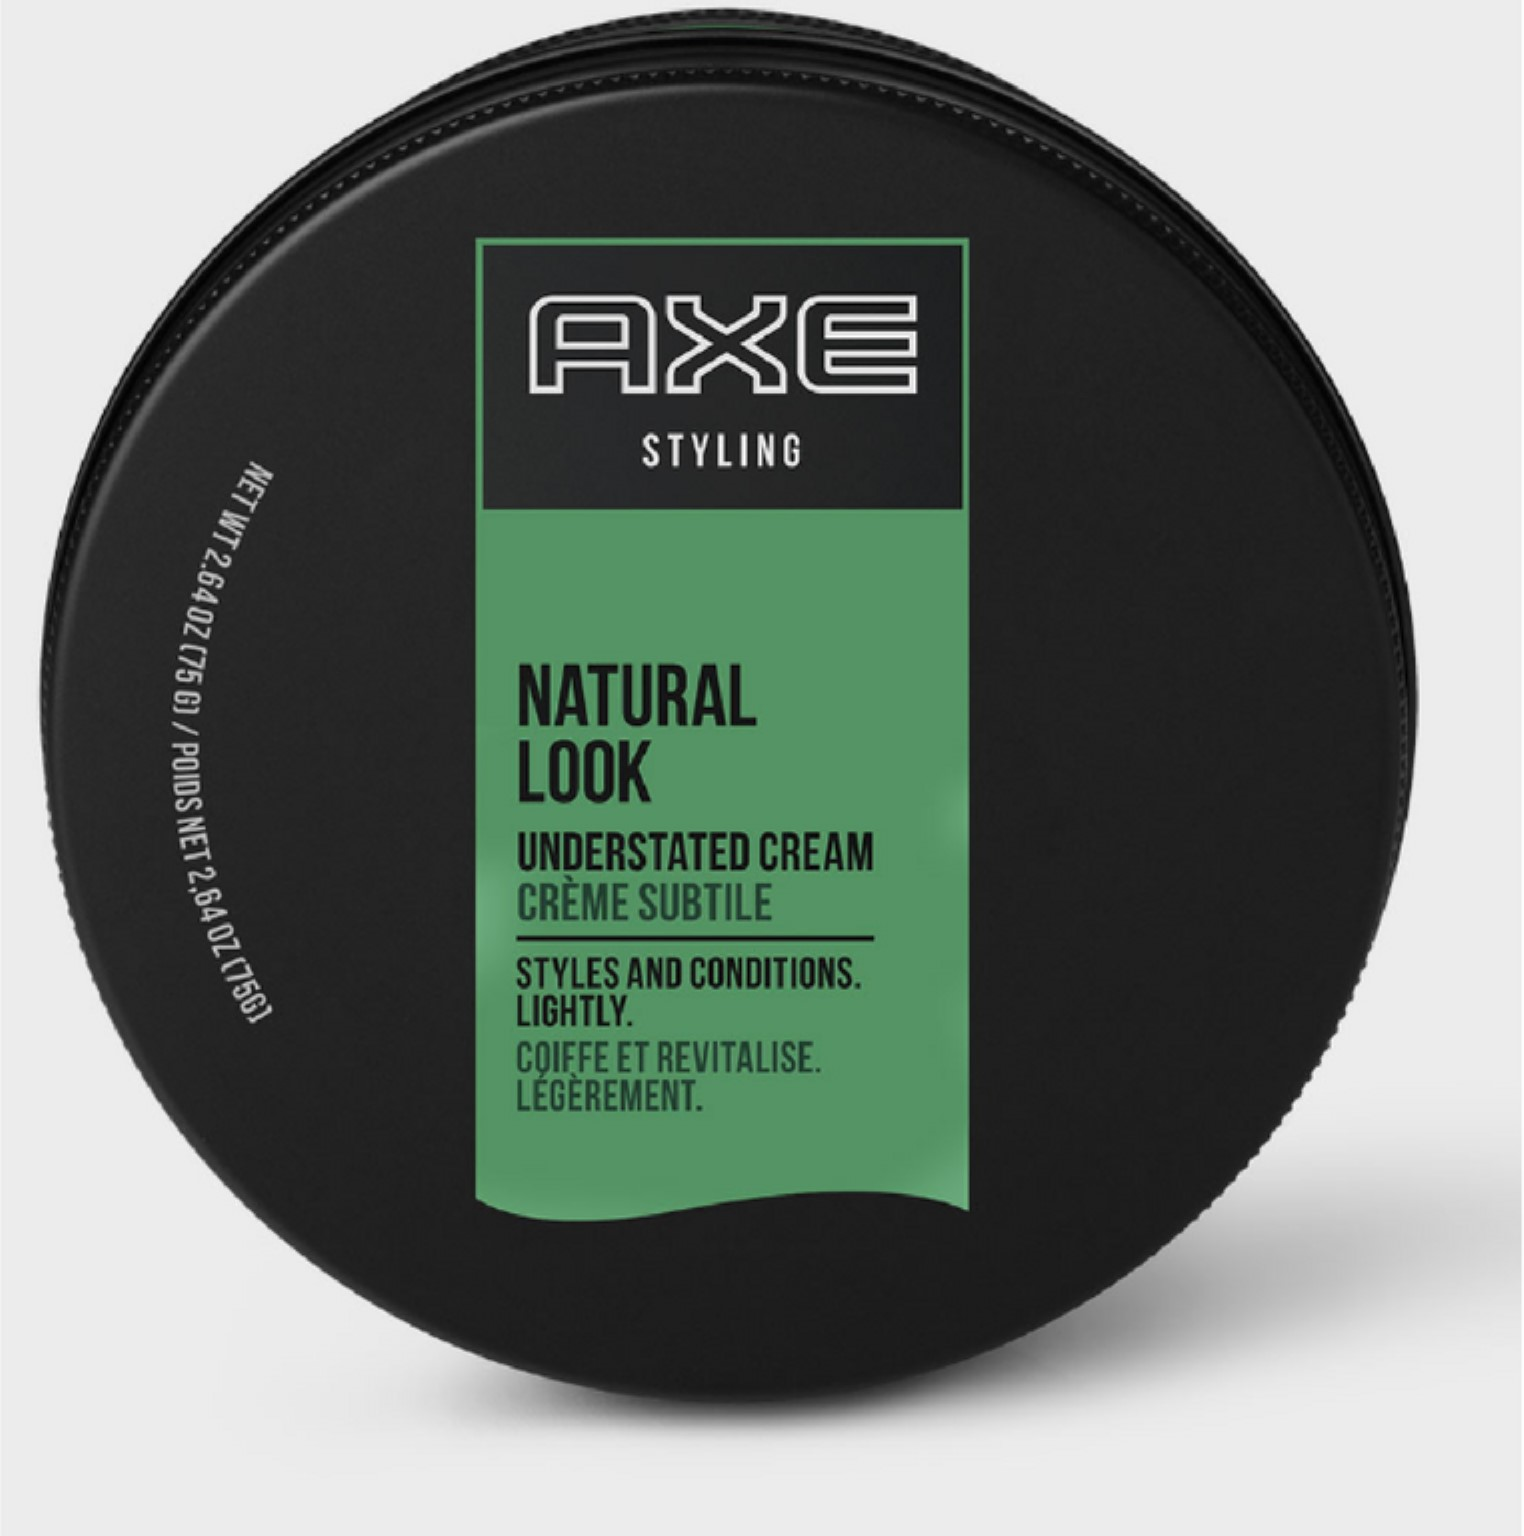 Axe Understated Natural Look Hair Styling Cream 2.64 oz (Pack of 2)